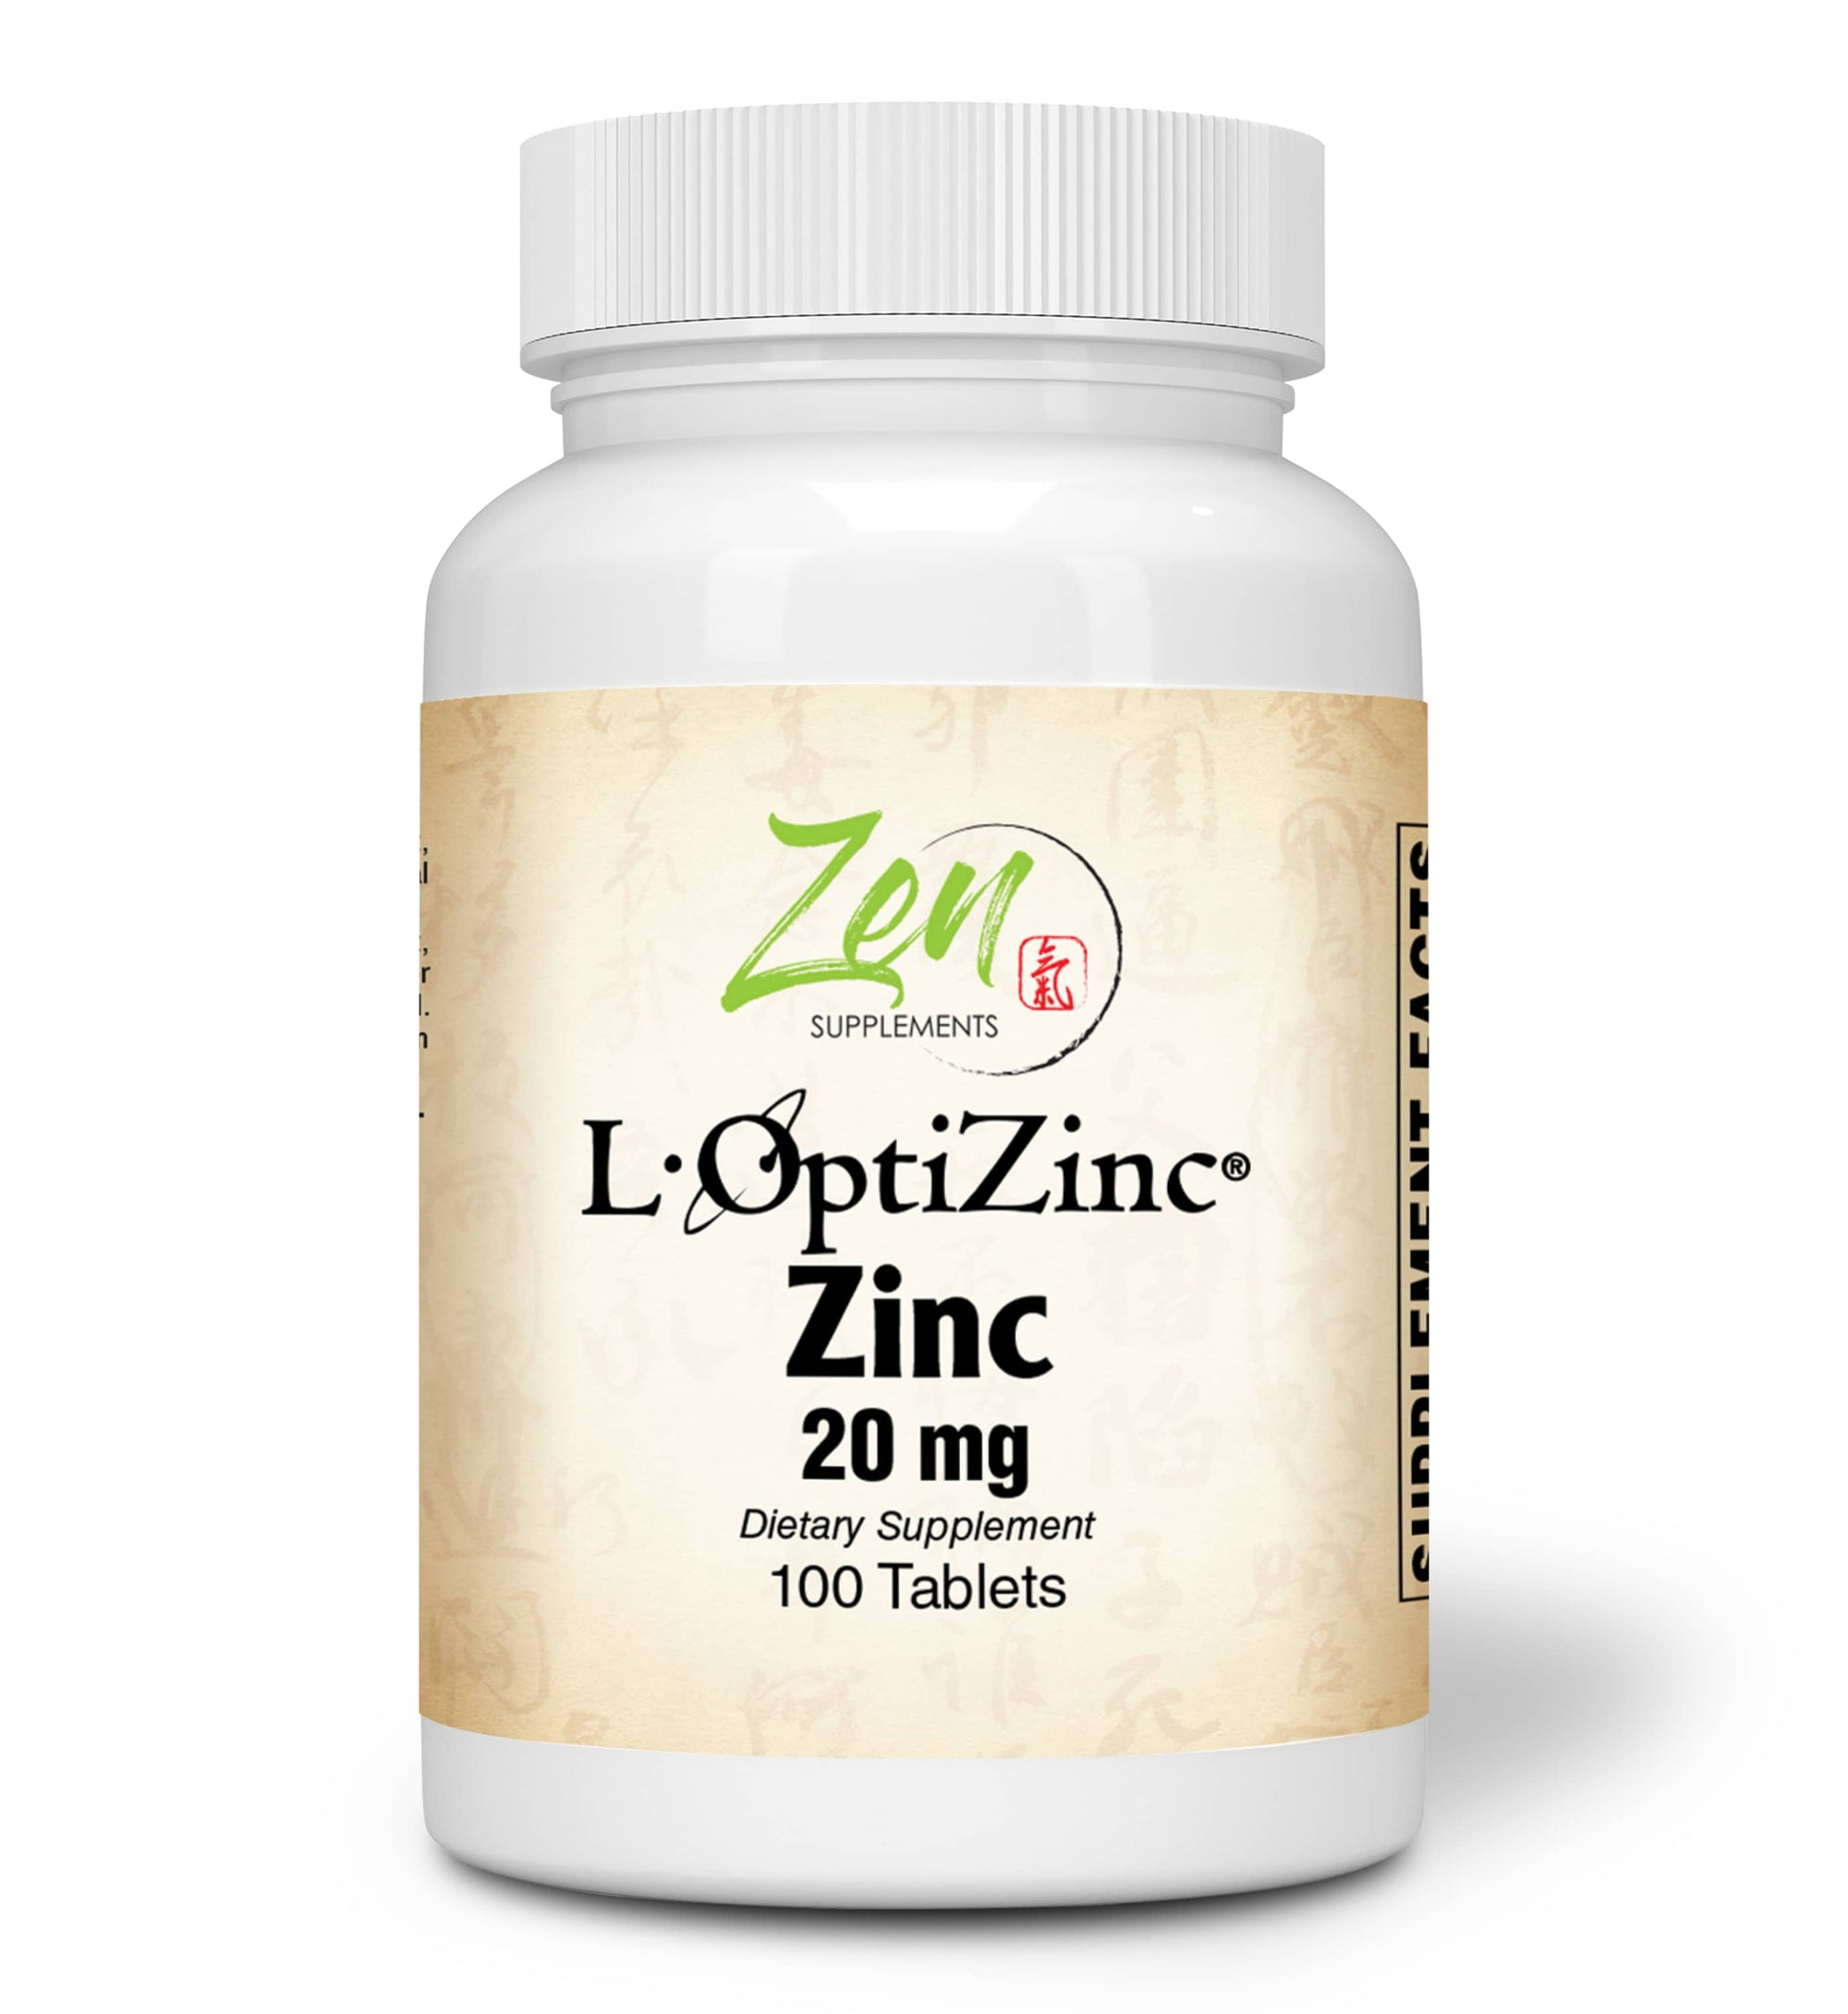 Zinc 20mg - With L-OptiZinc® - 100 Tabs